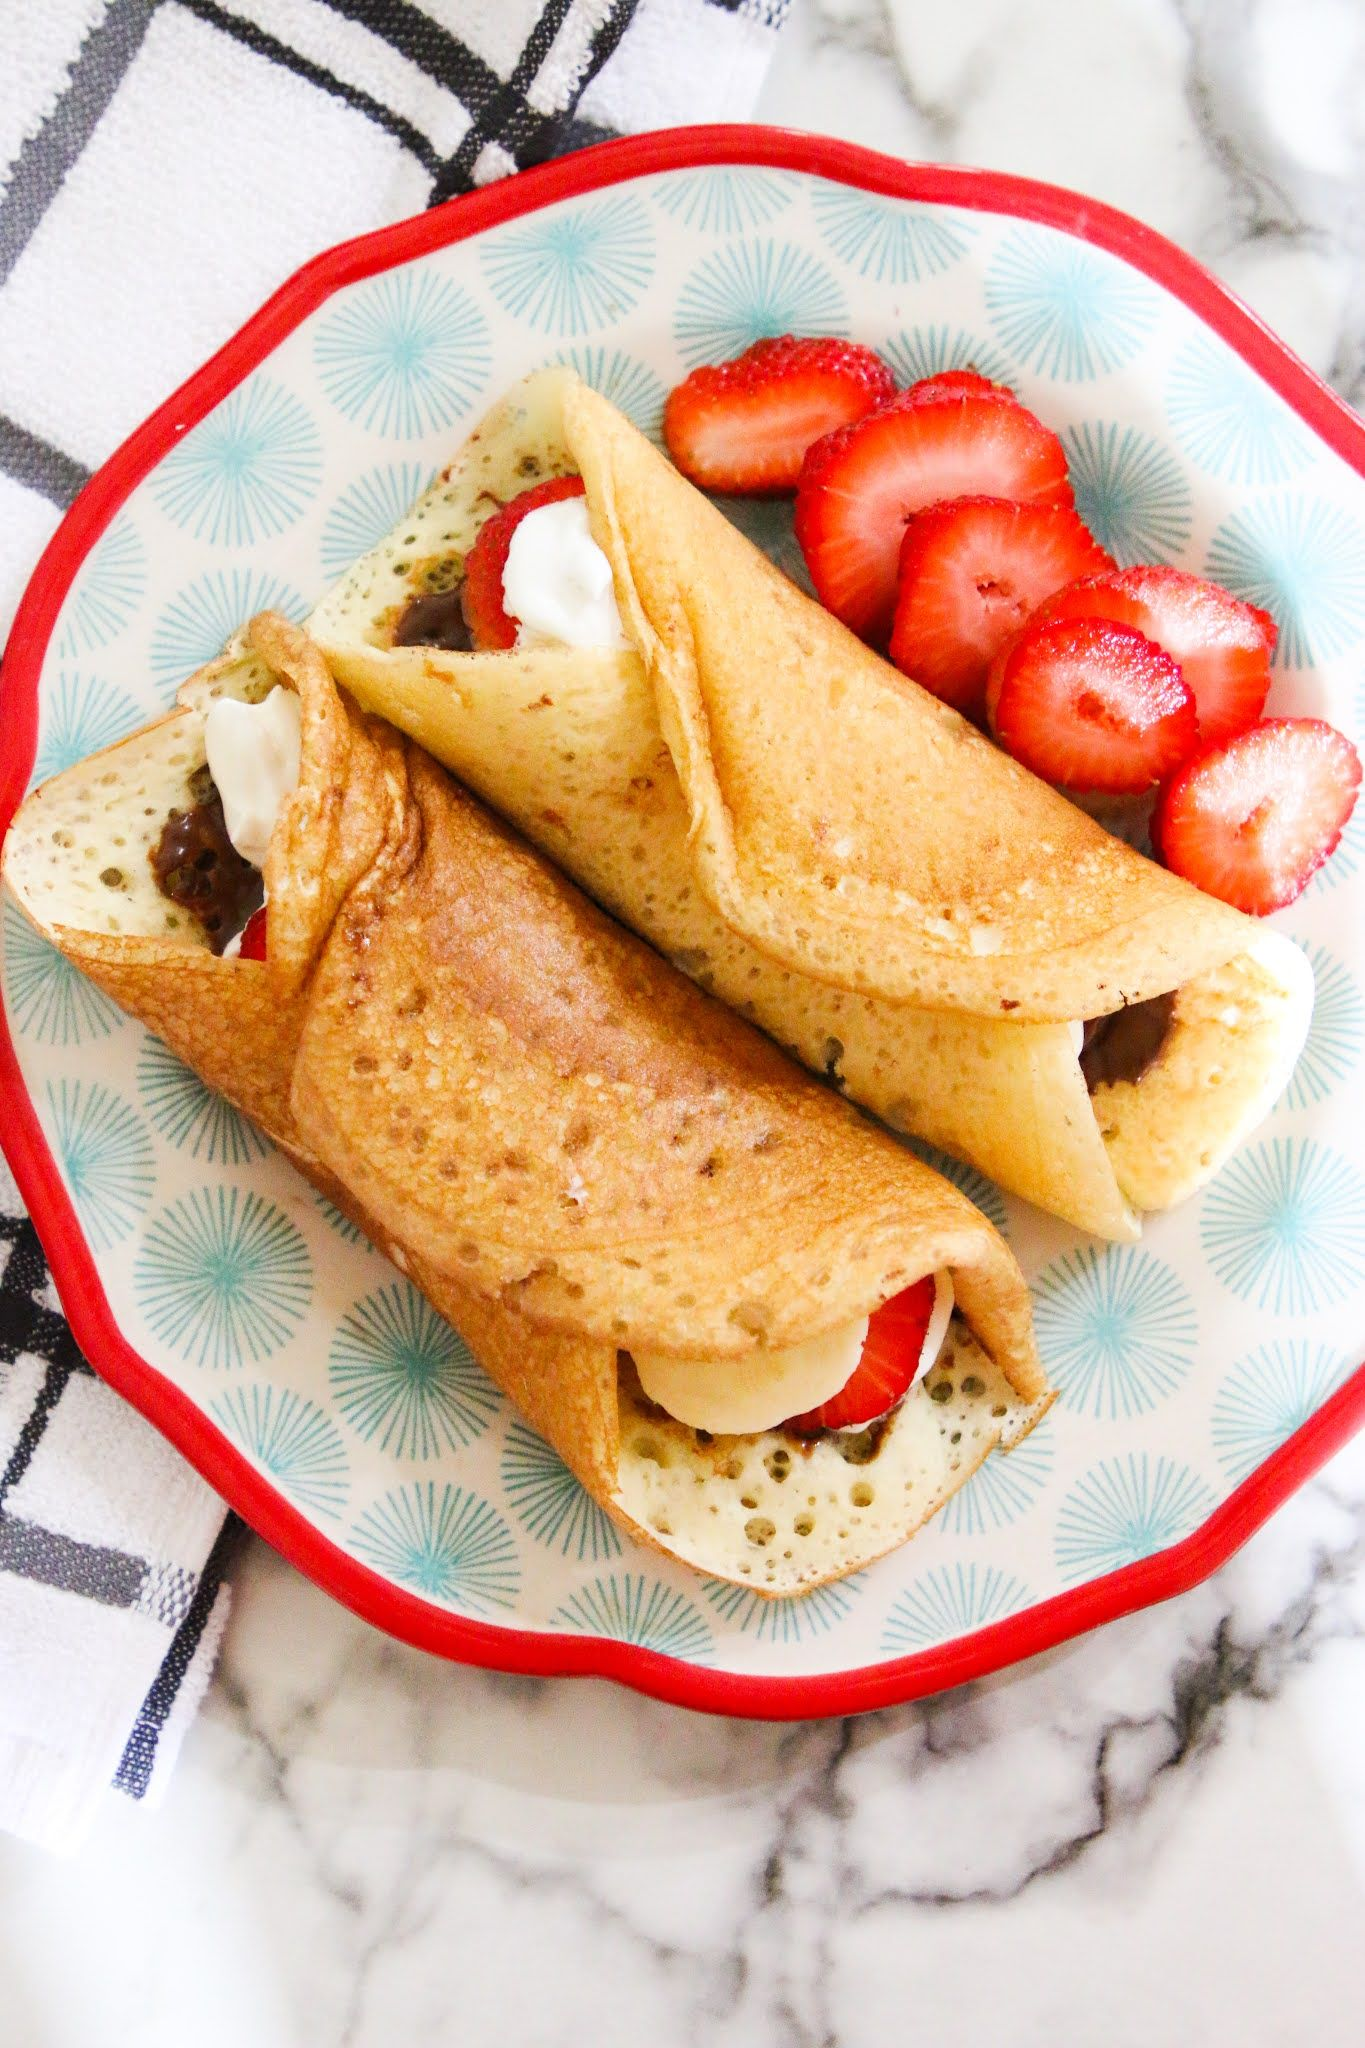 How To Make Crepes From Pancake Mix Recipe In 2020 Pancakes Mix Crepes With Pancake Mix Easy Crepe Recipe